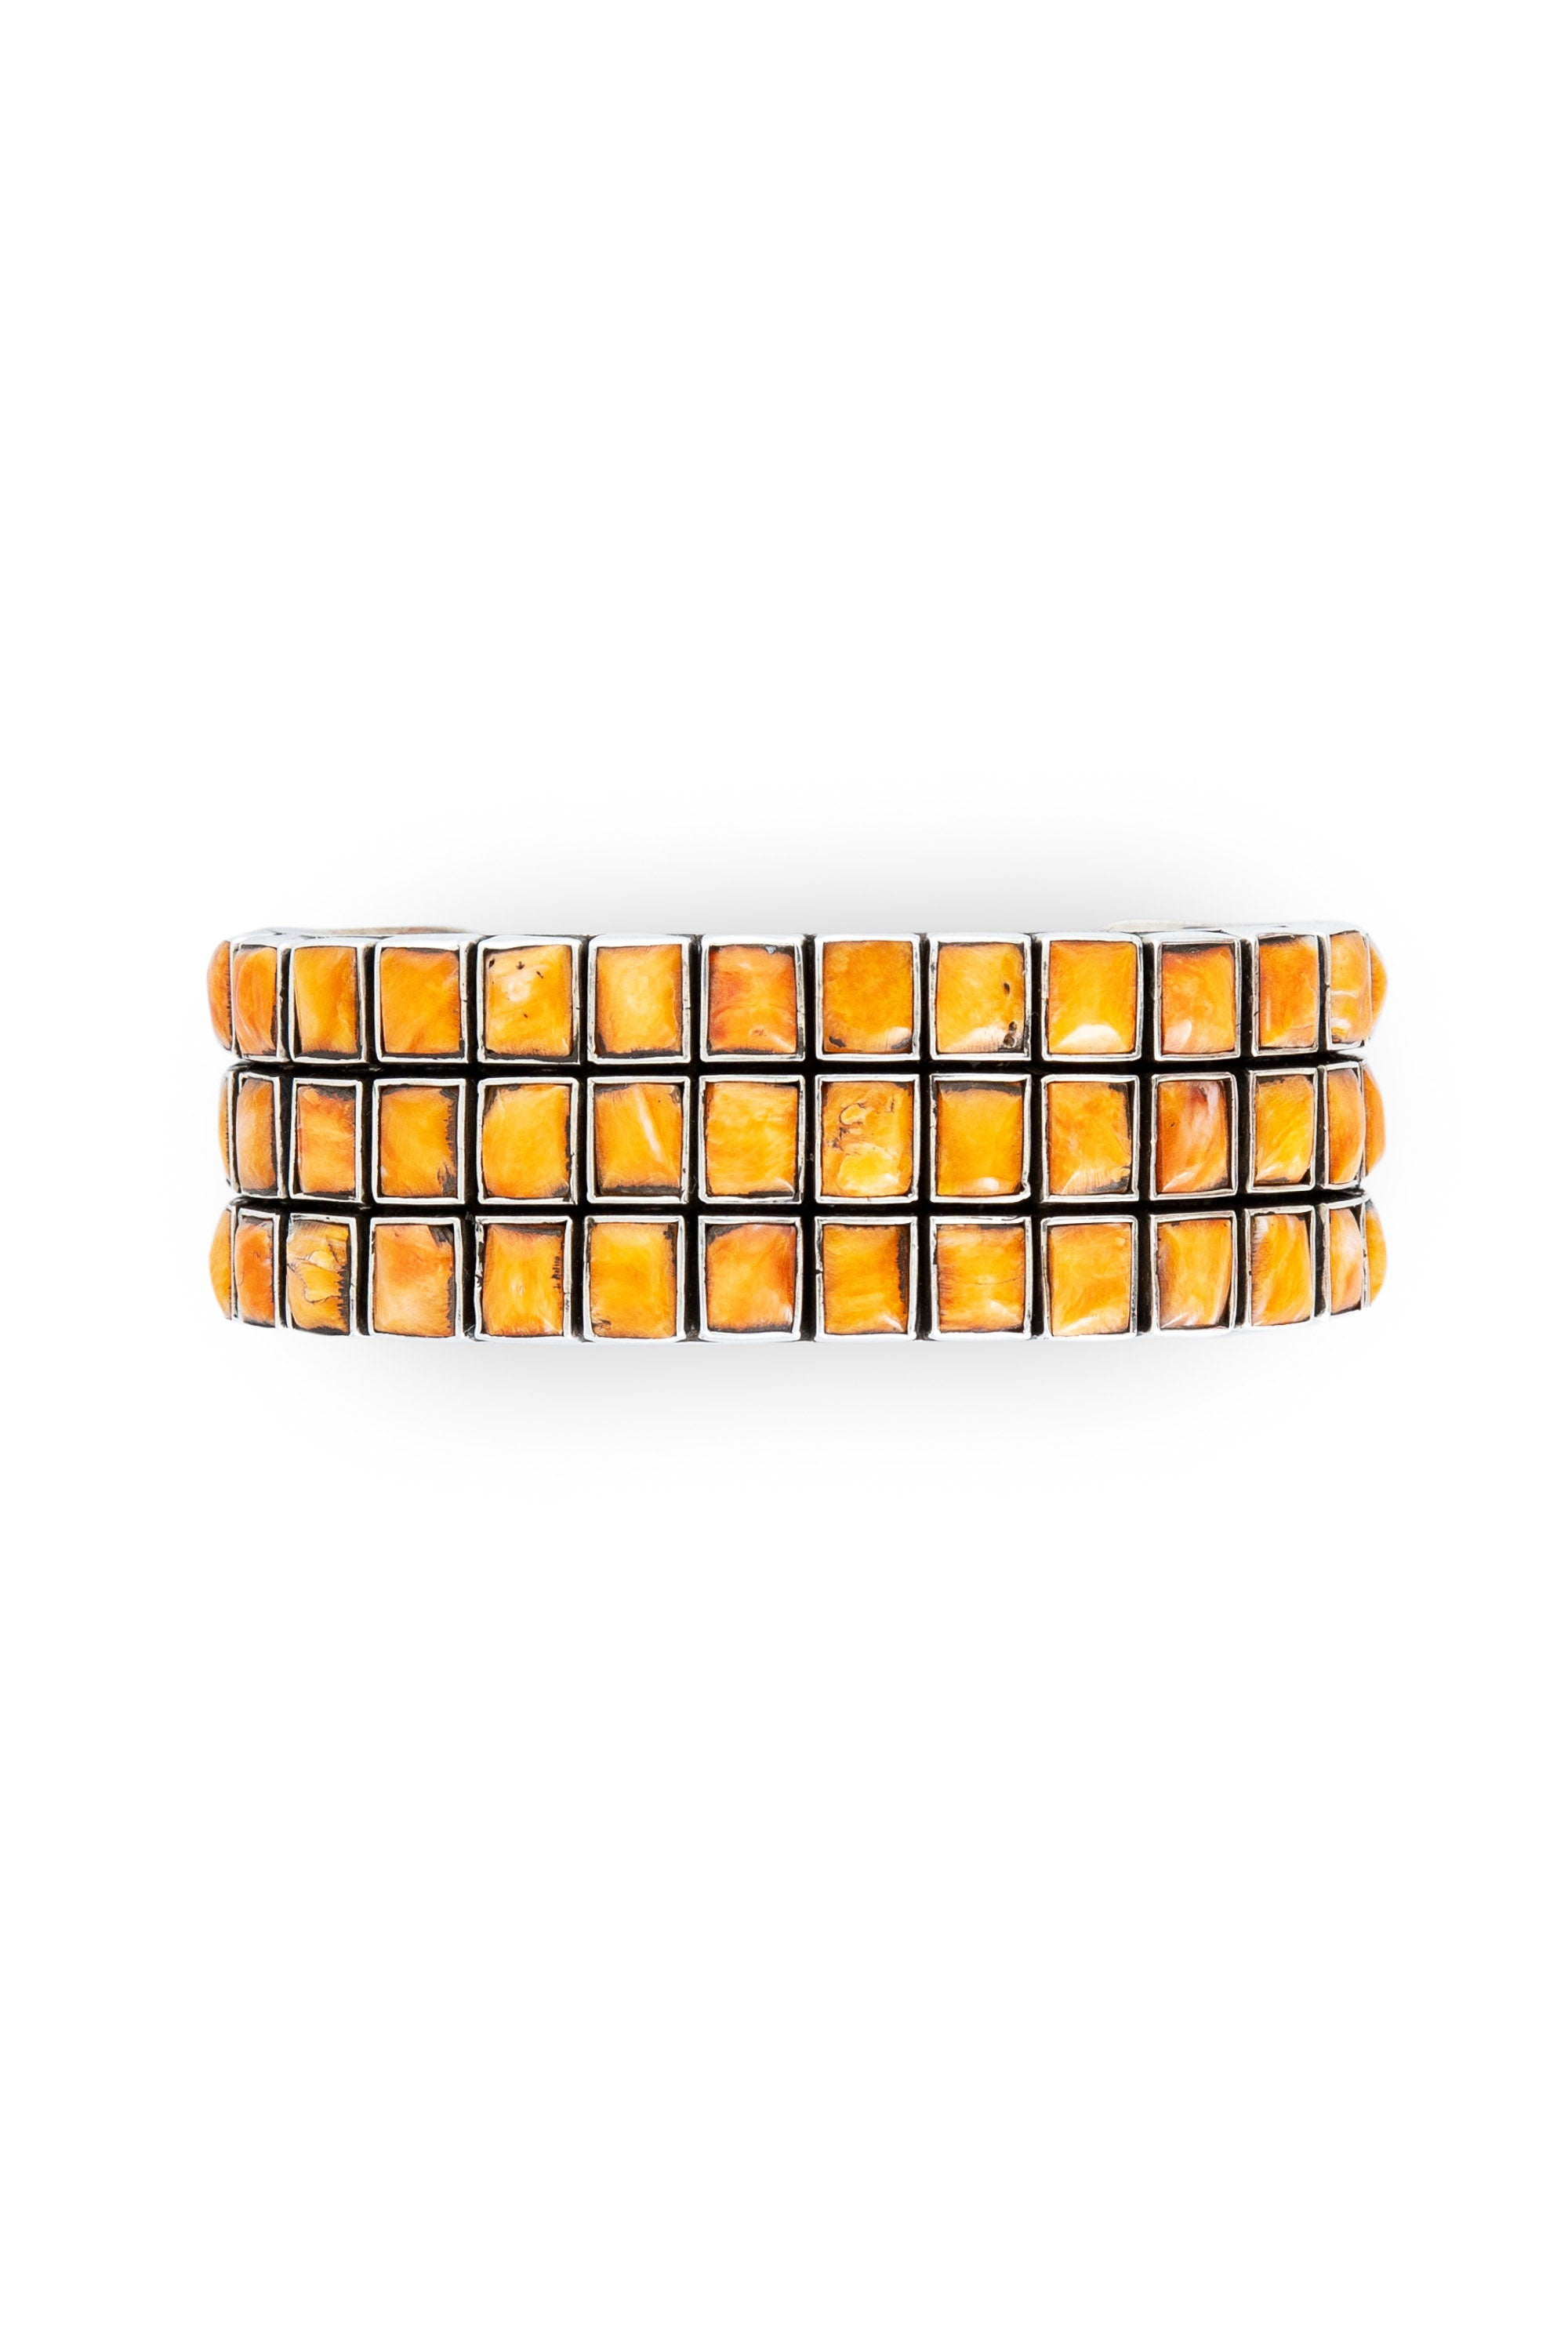 Cuff, Orange Spiny Oyster, 3 Row, Federico, Contemporary, 2688